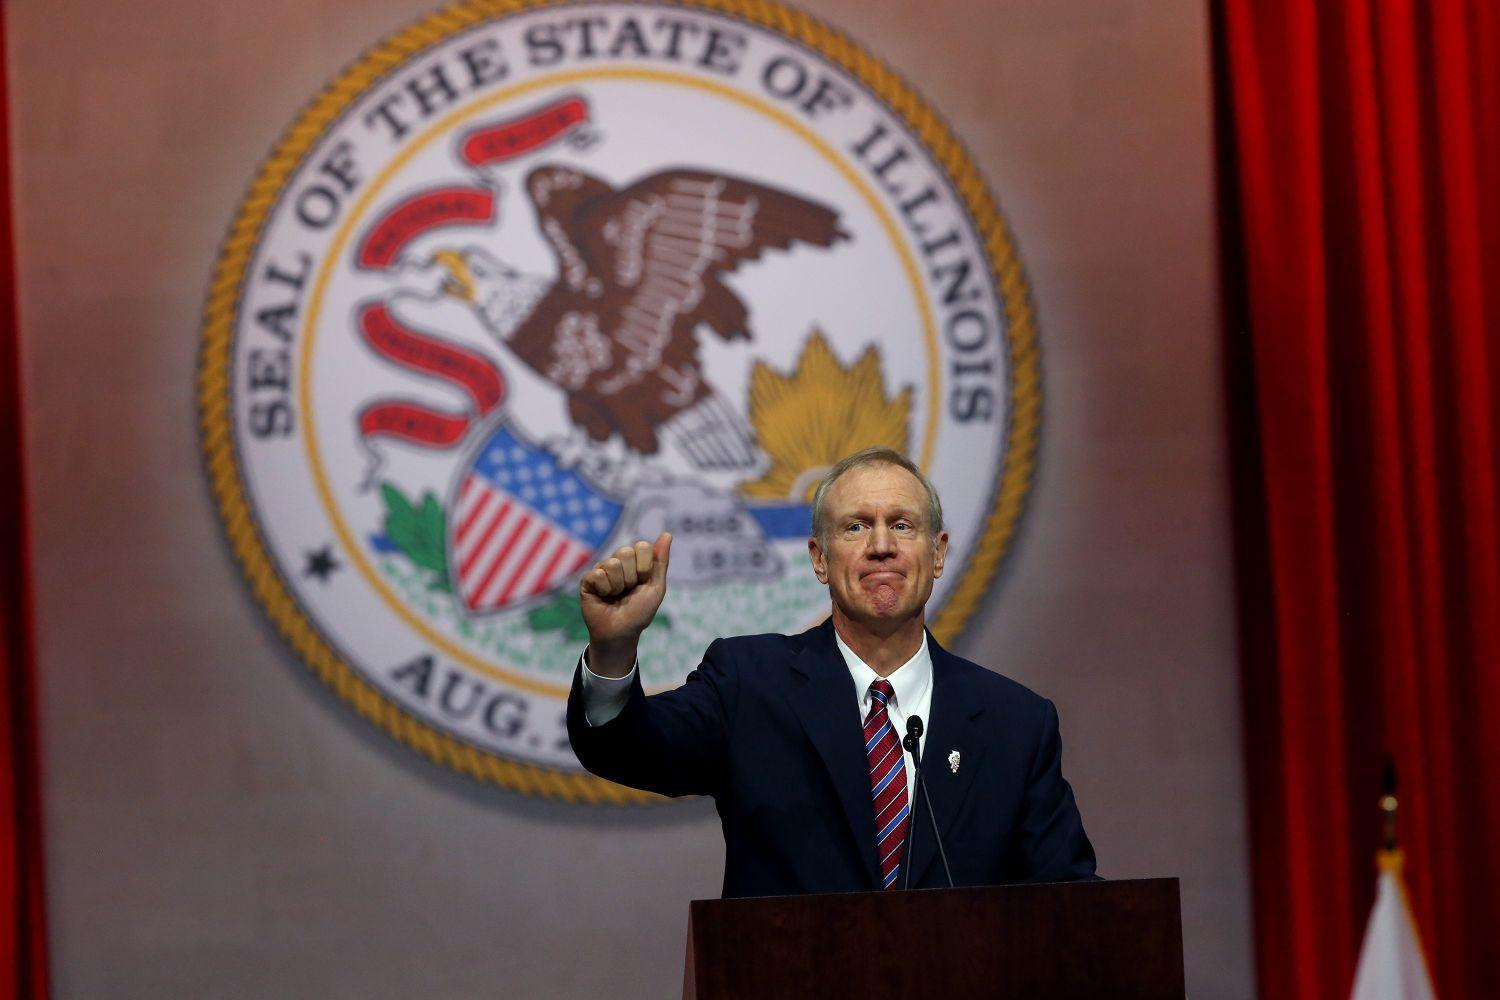 The Illinois House overrode Gov. Bruce Rauner's veto of a state budget on Thursday. The state has its first budget since 2015.